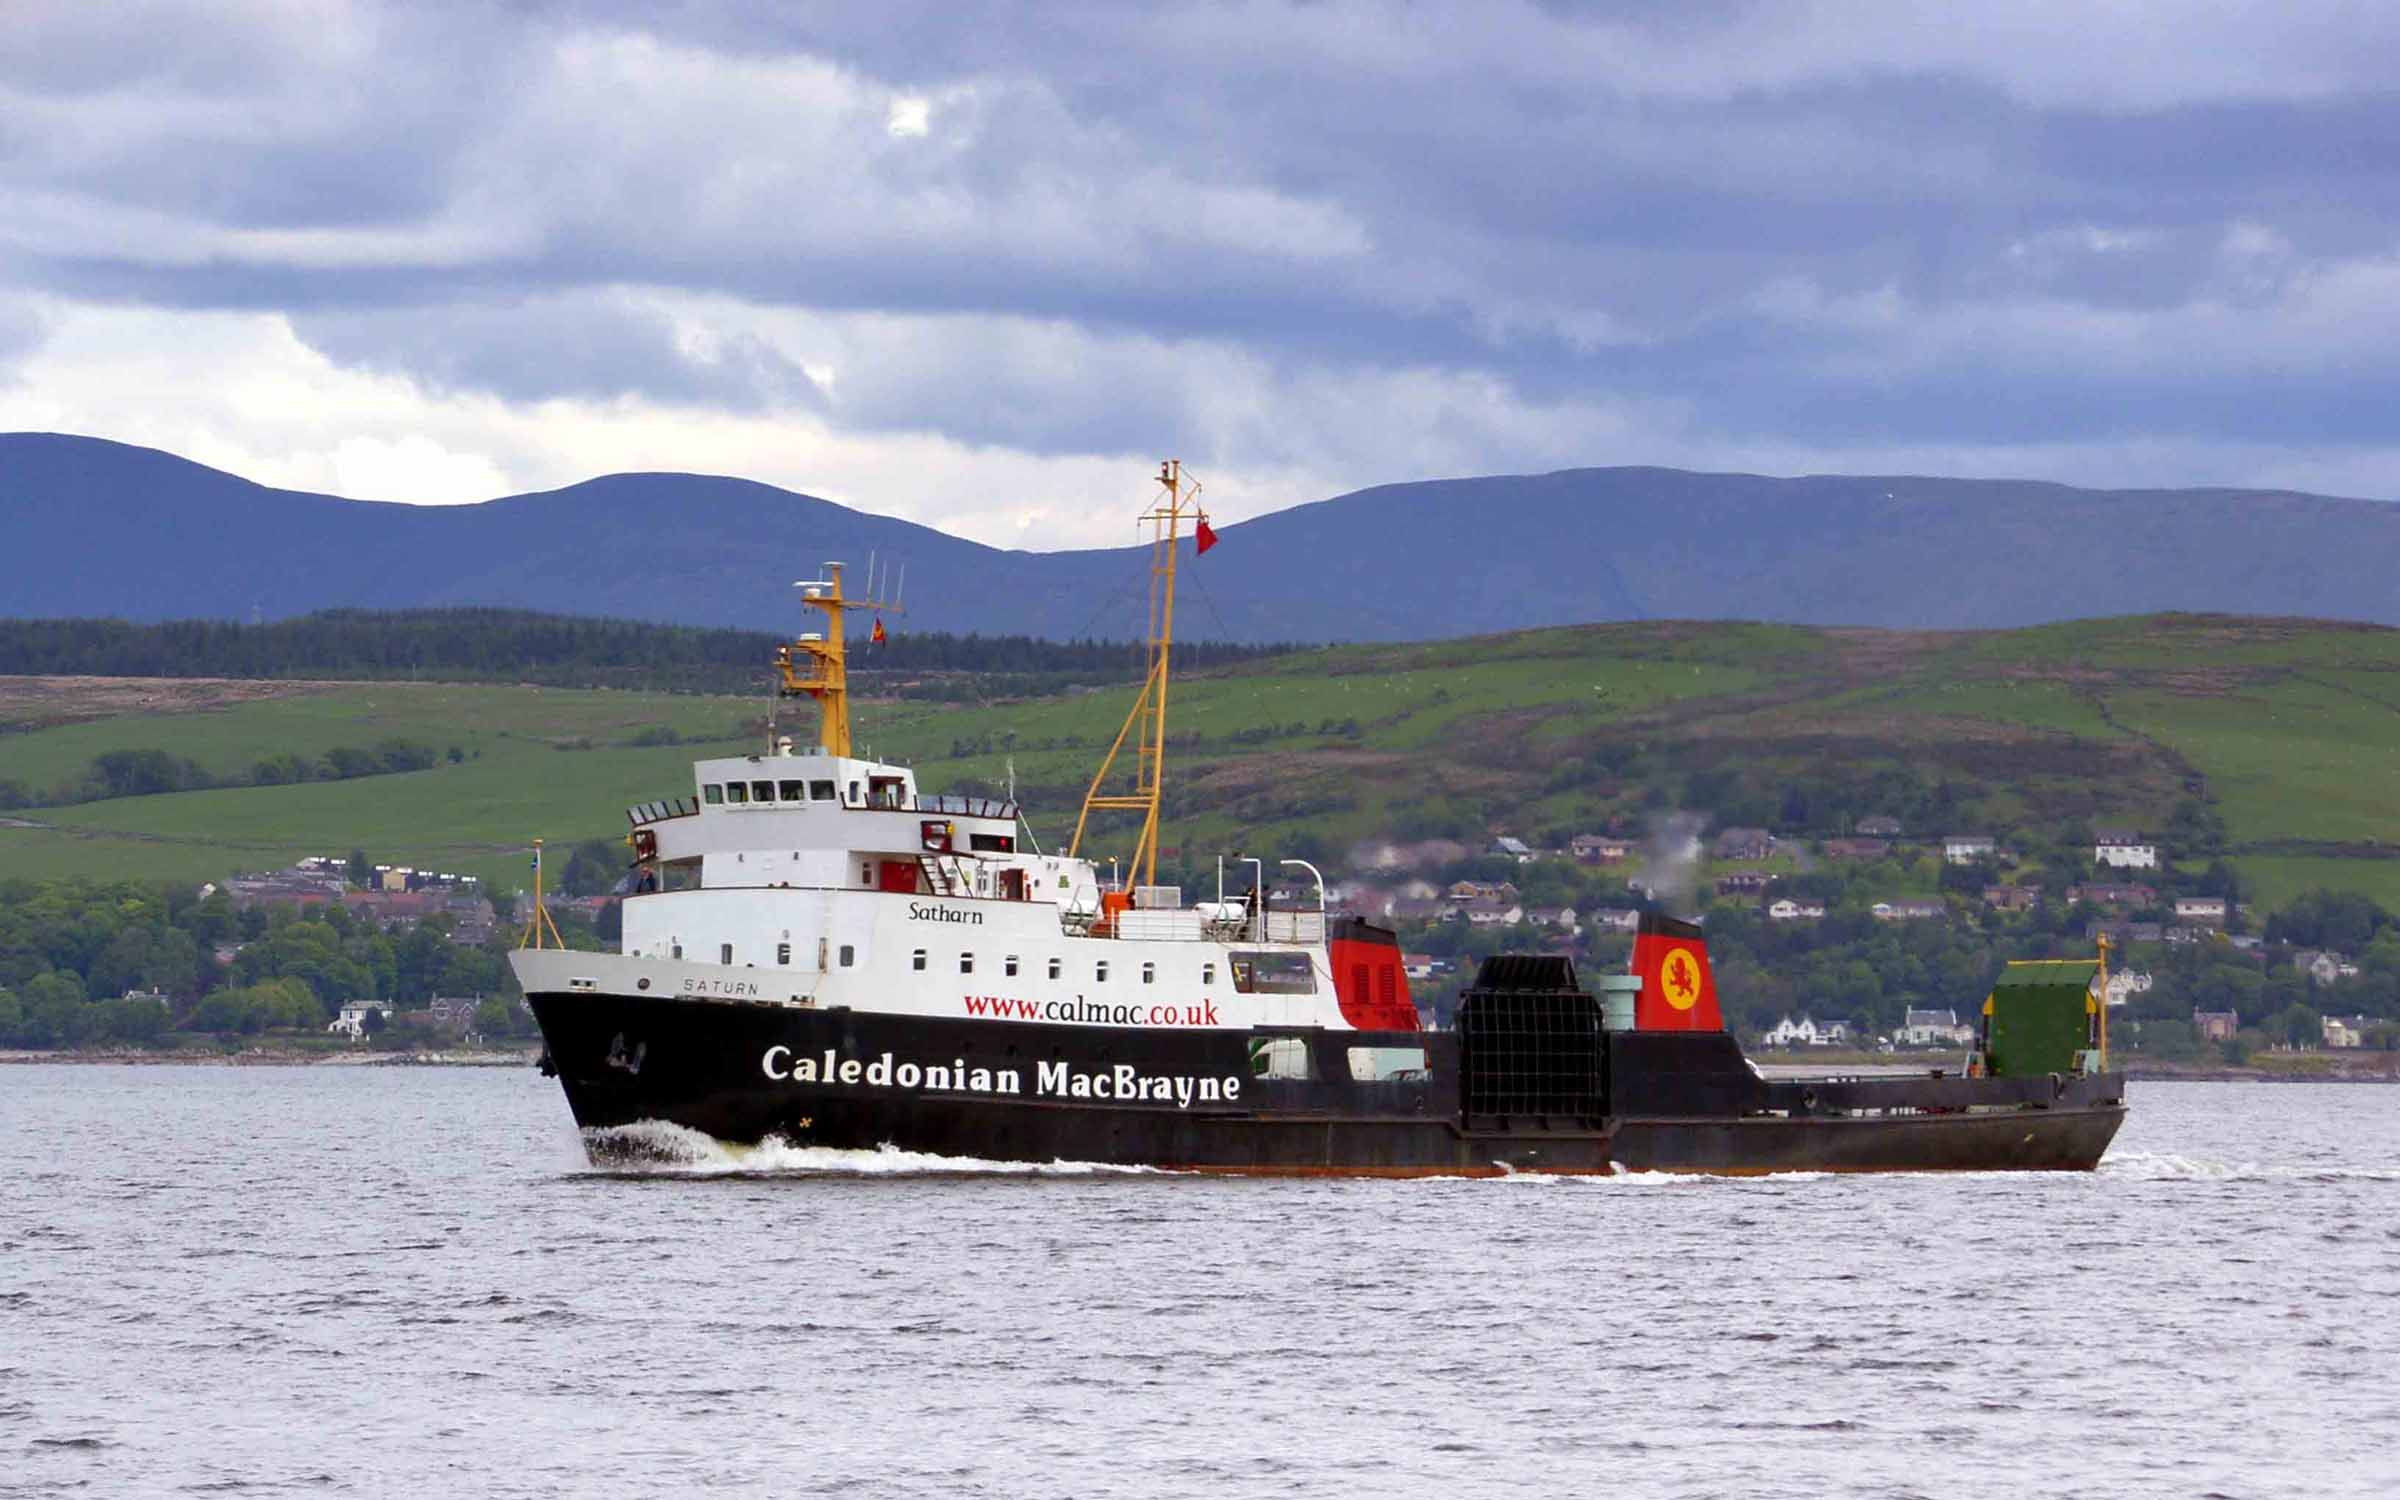 Saturn crossing to Dunoon (Ships of CalMac)